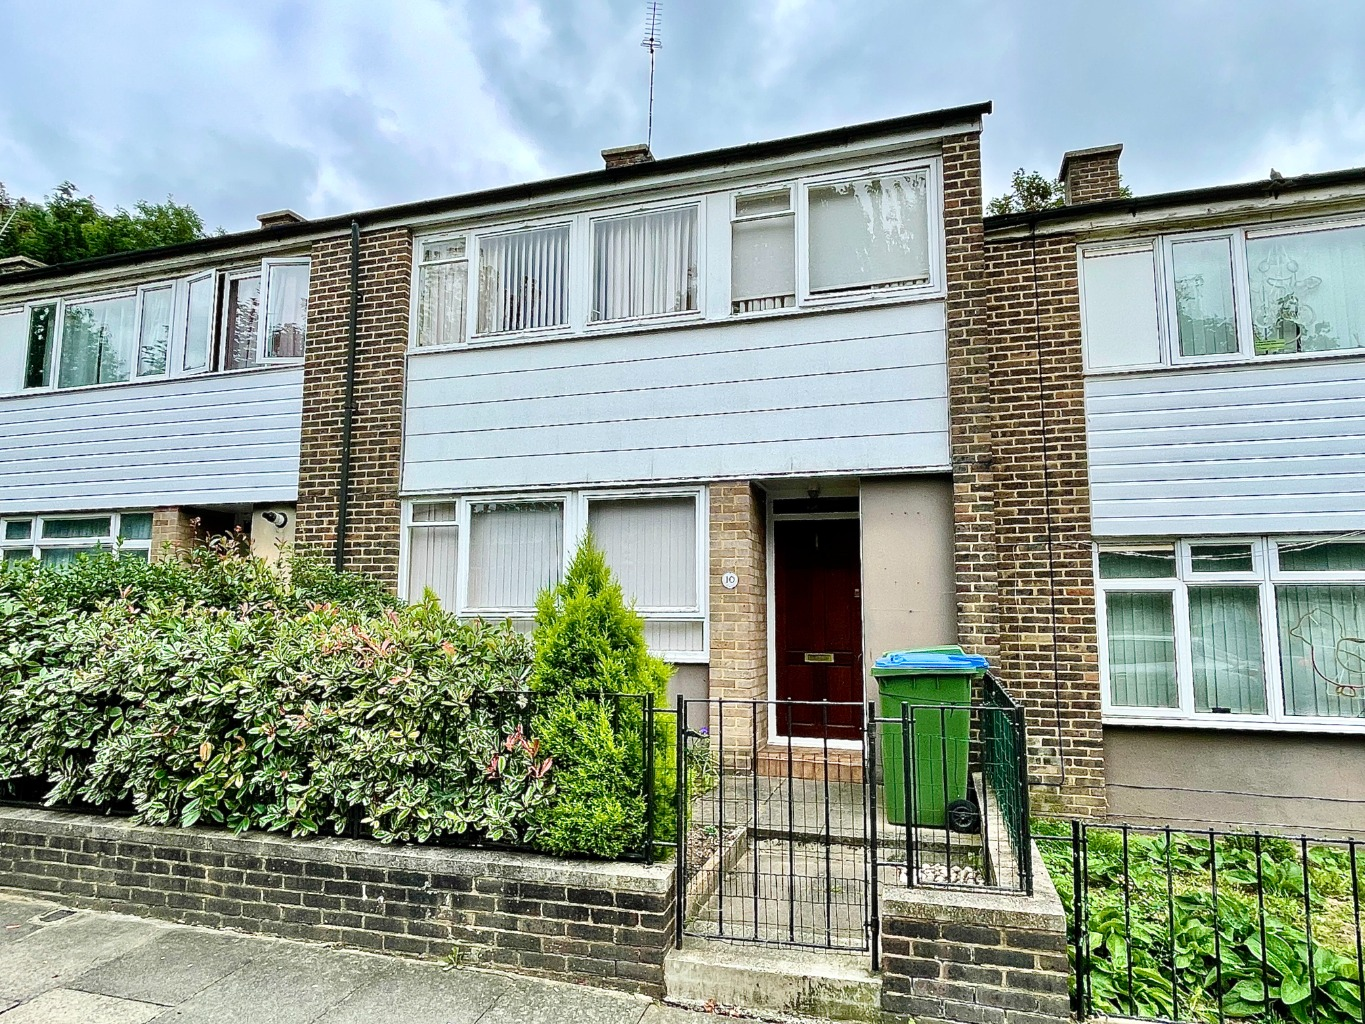 3 bed terraced house for sale in Godfrey Road, London, SE18